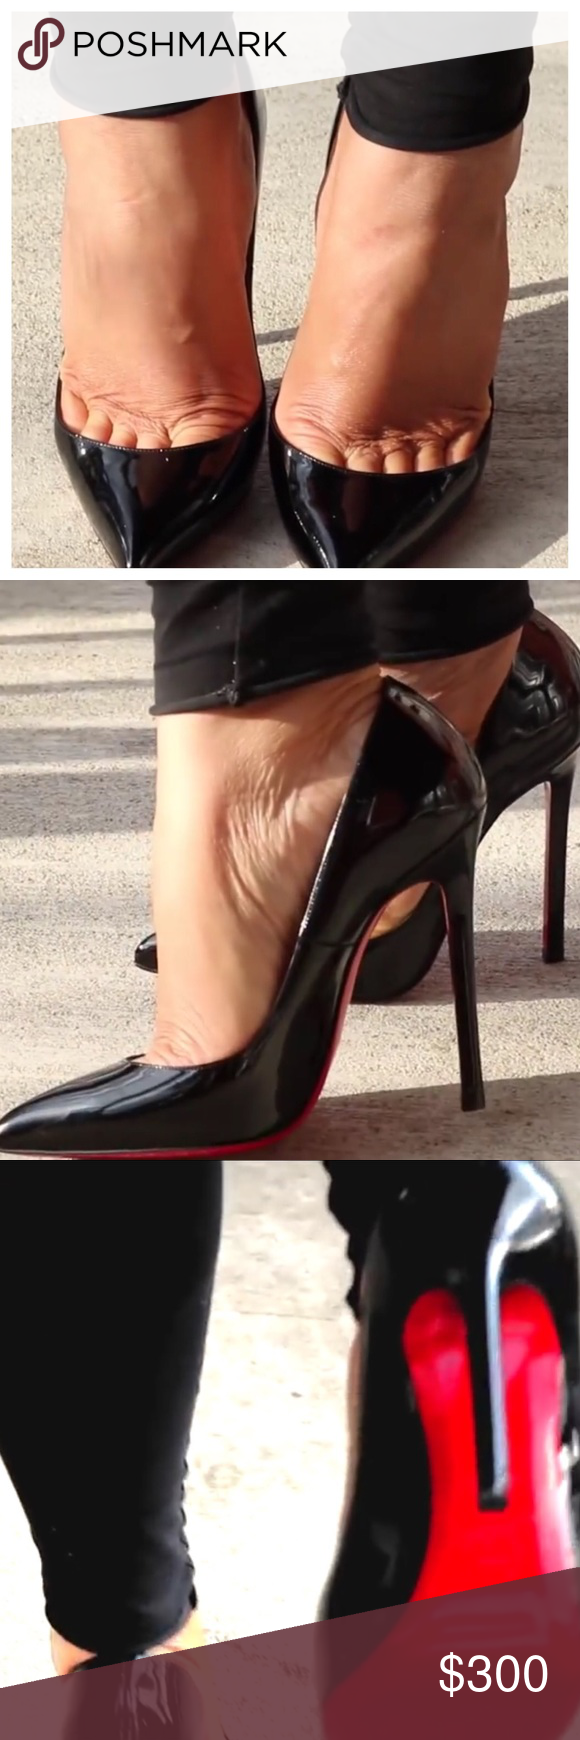 4a9532b7aa2 Christian Louboutin Pigalle 120 Christian Louboutin Pigalle 120 in black  patent leather. Size 9